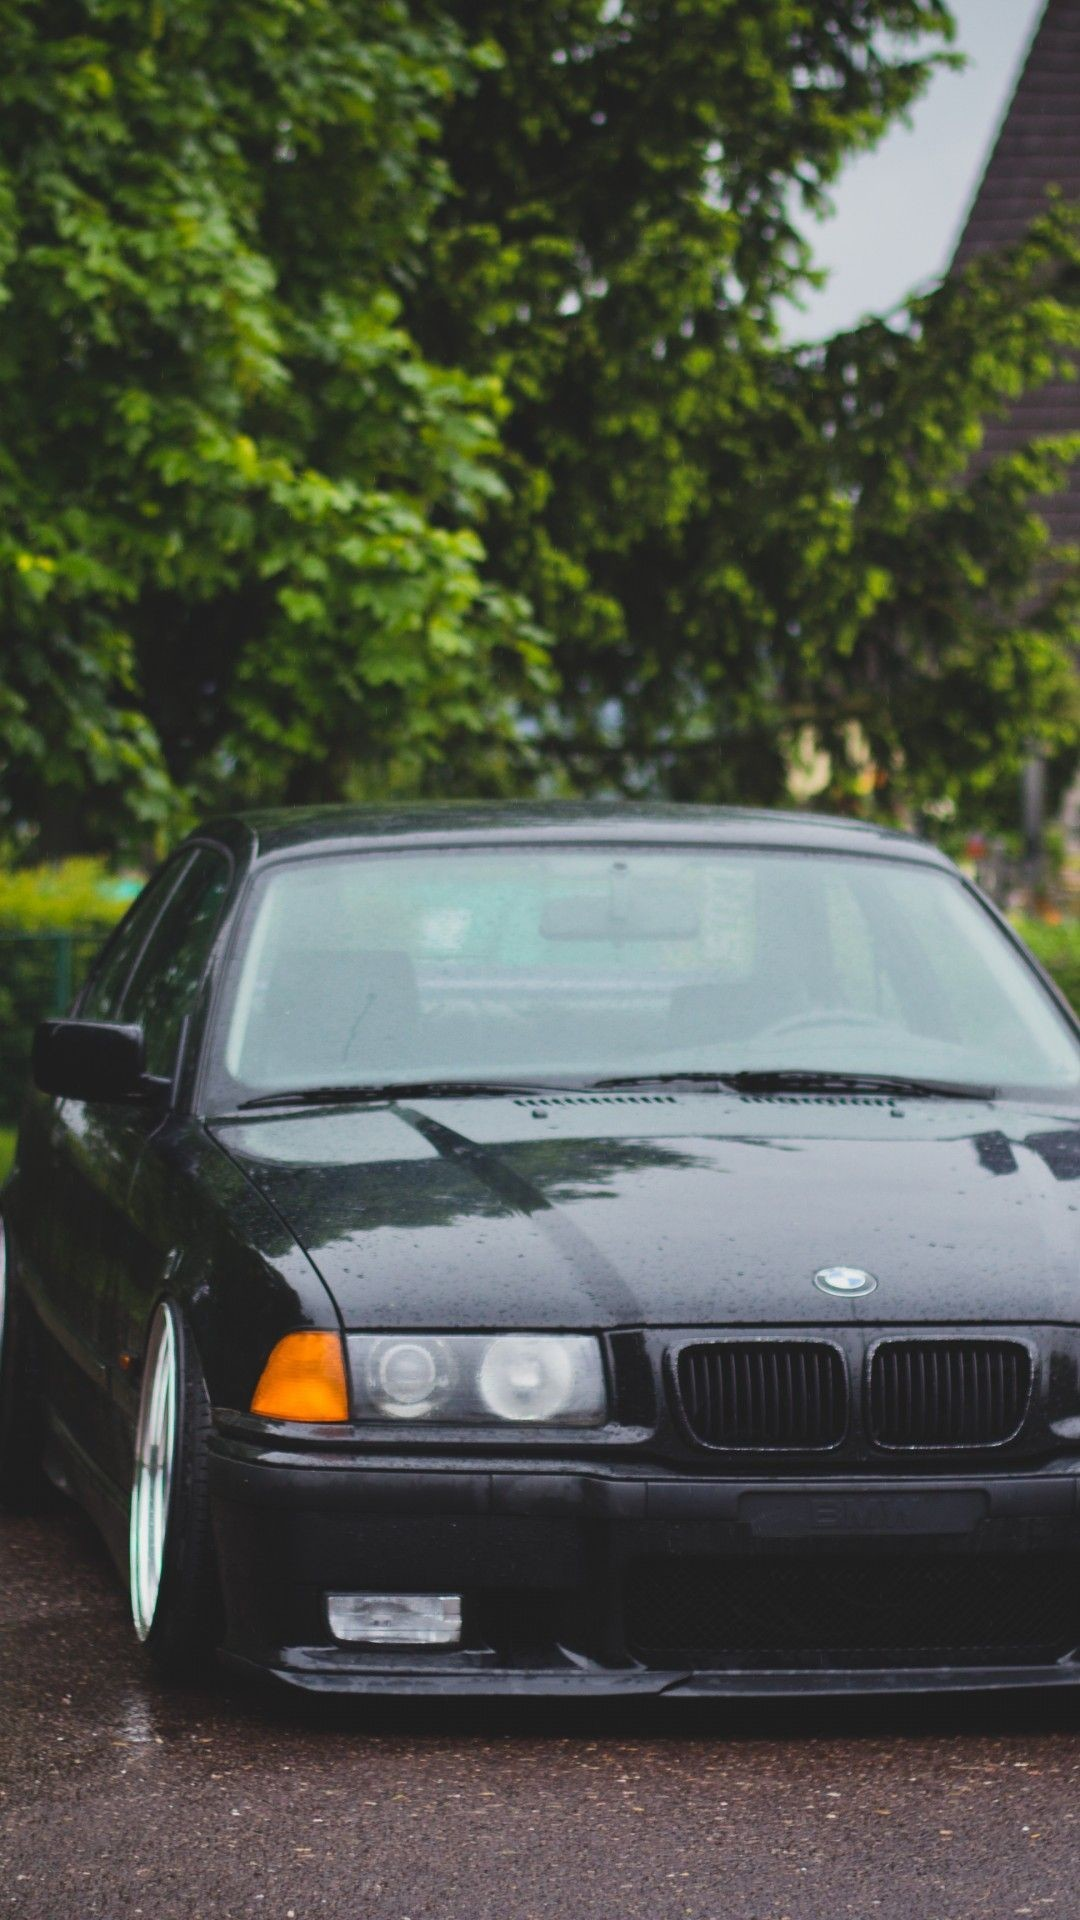 E36 M3 Wallpaper 183 ① Wallpapertag